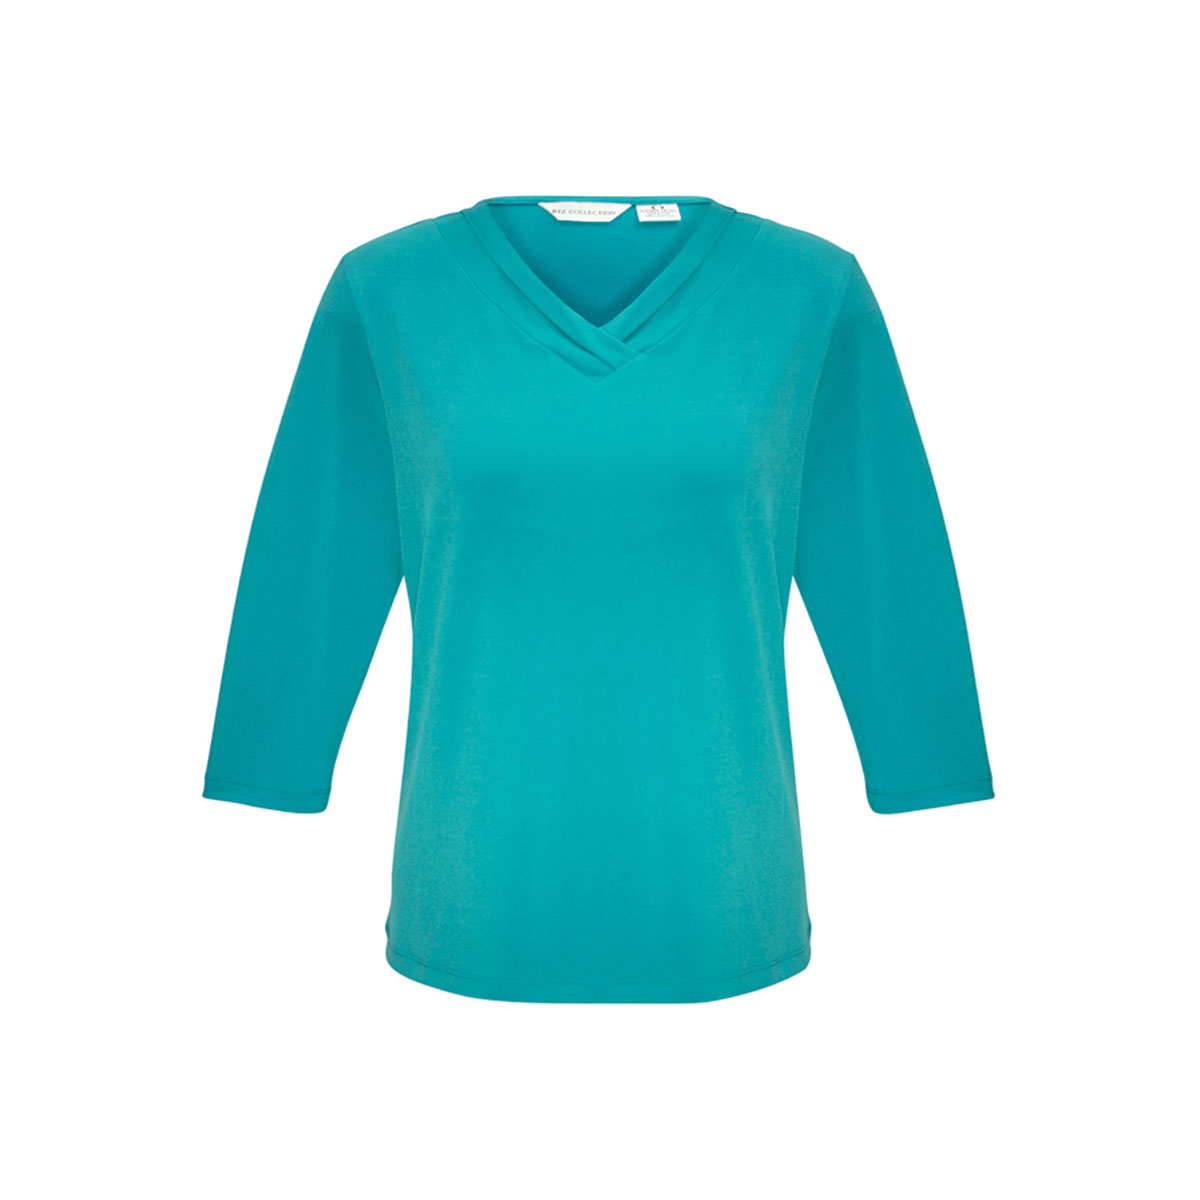 Ladies Lana 3/4 Sleeve Top-Turquoise Blue